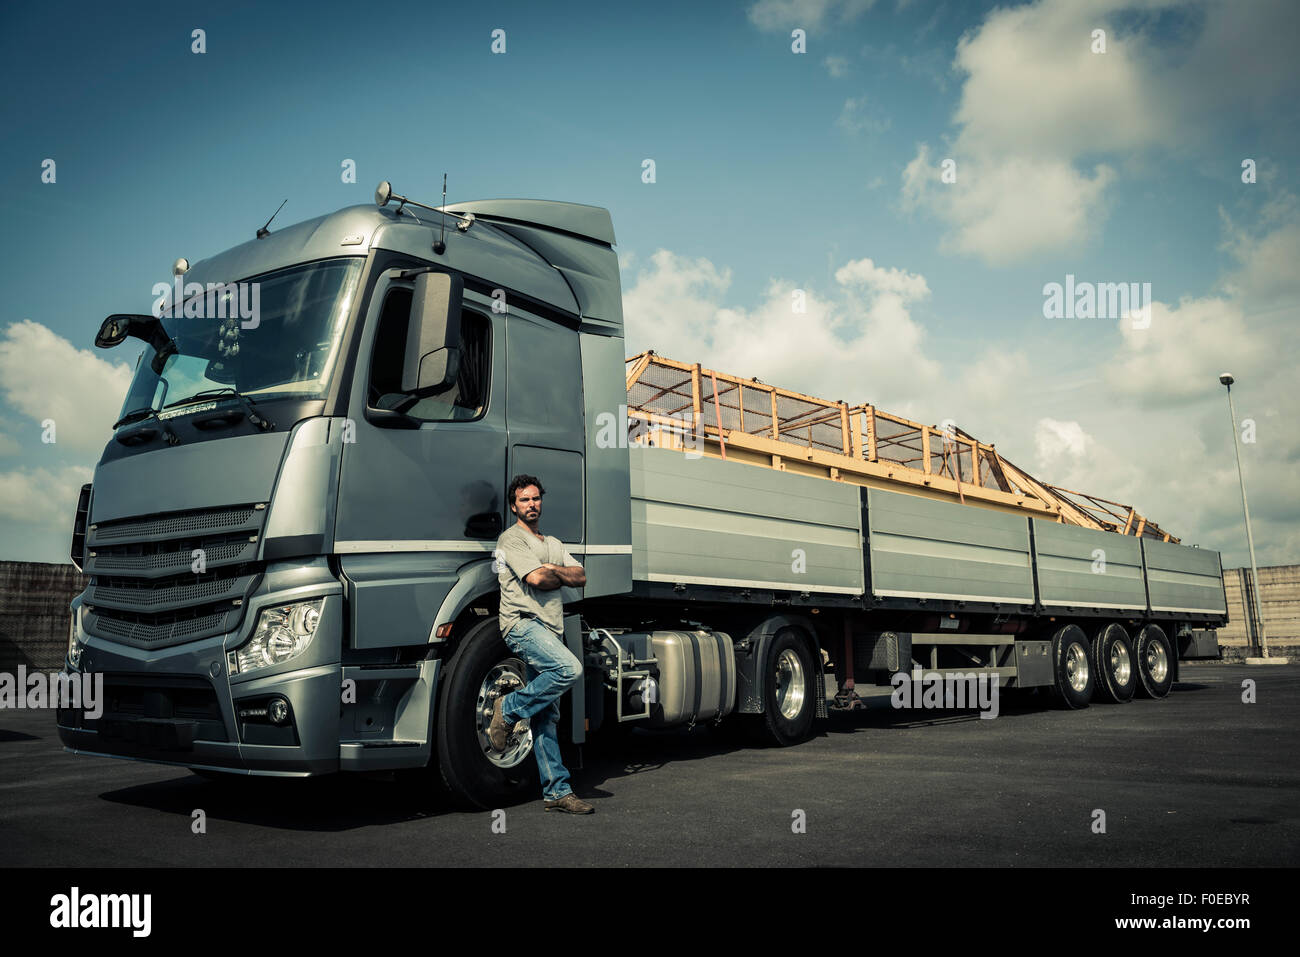 Truck driver with tractor trailer truck - Stock Image